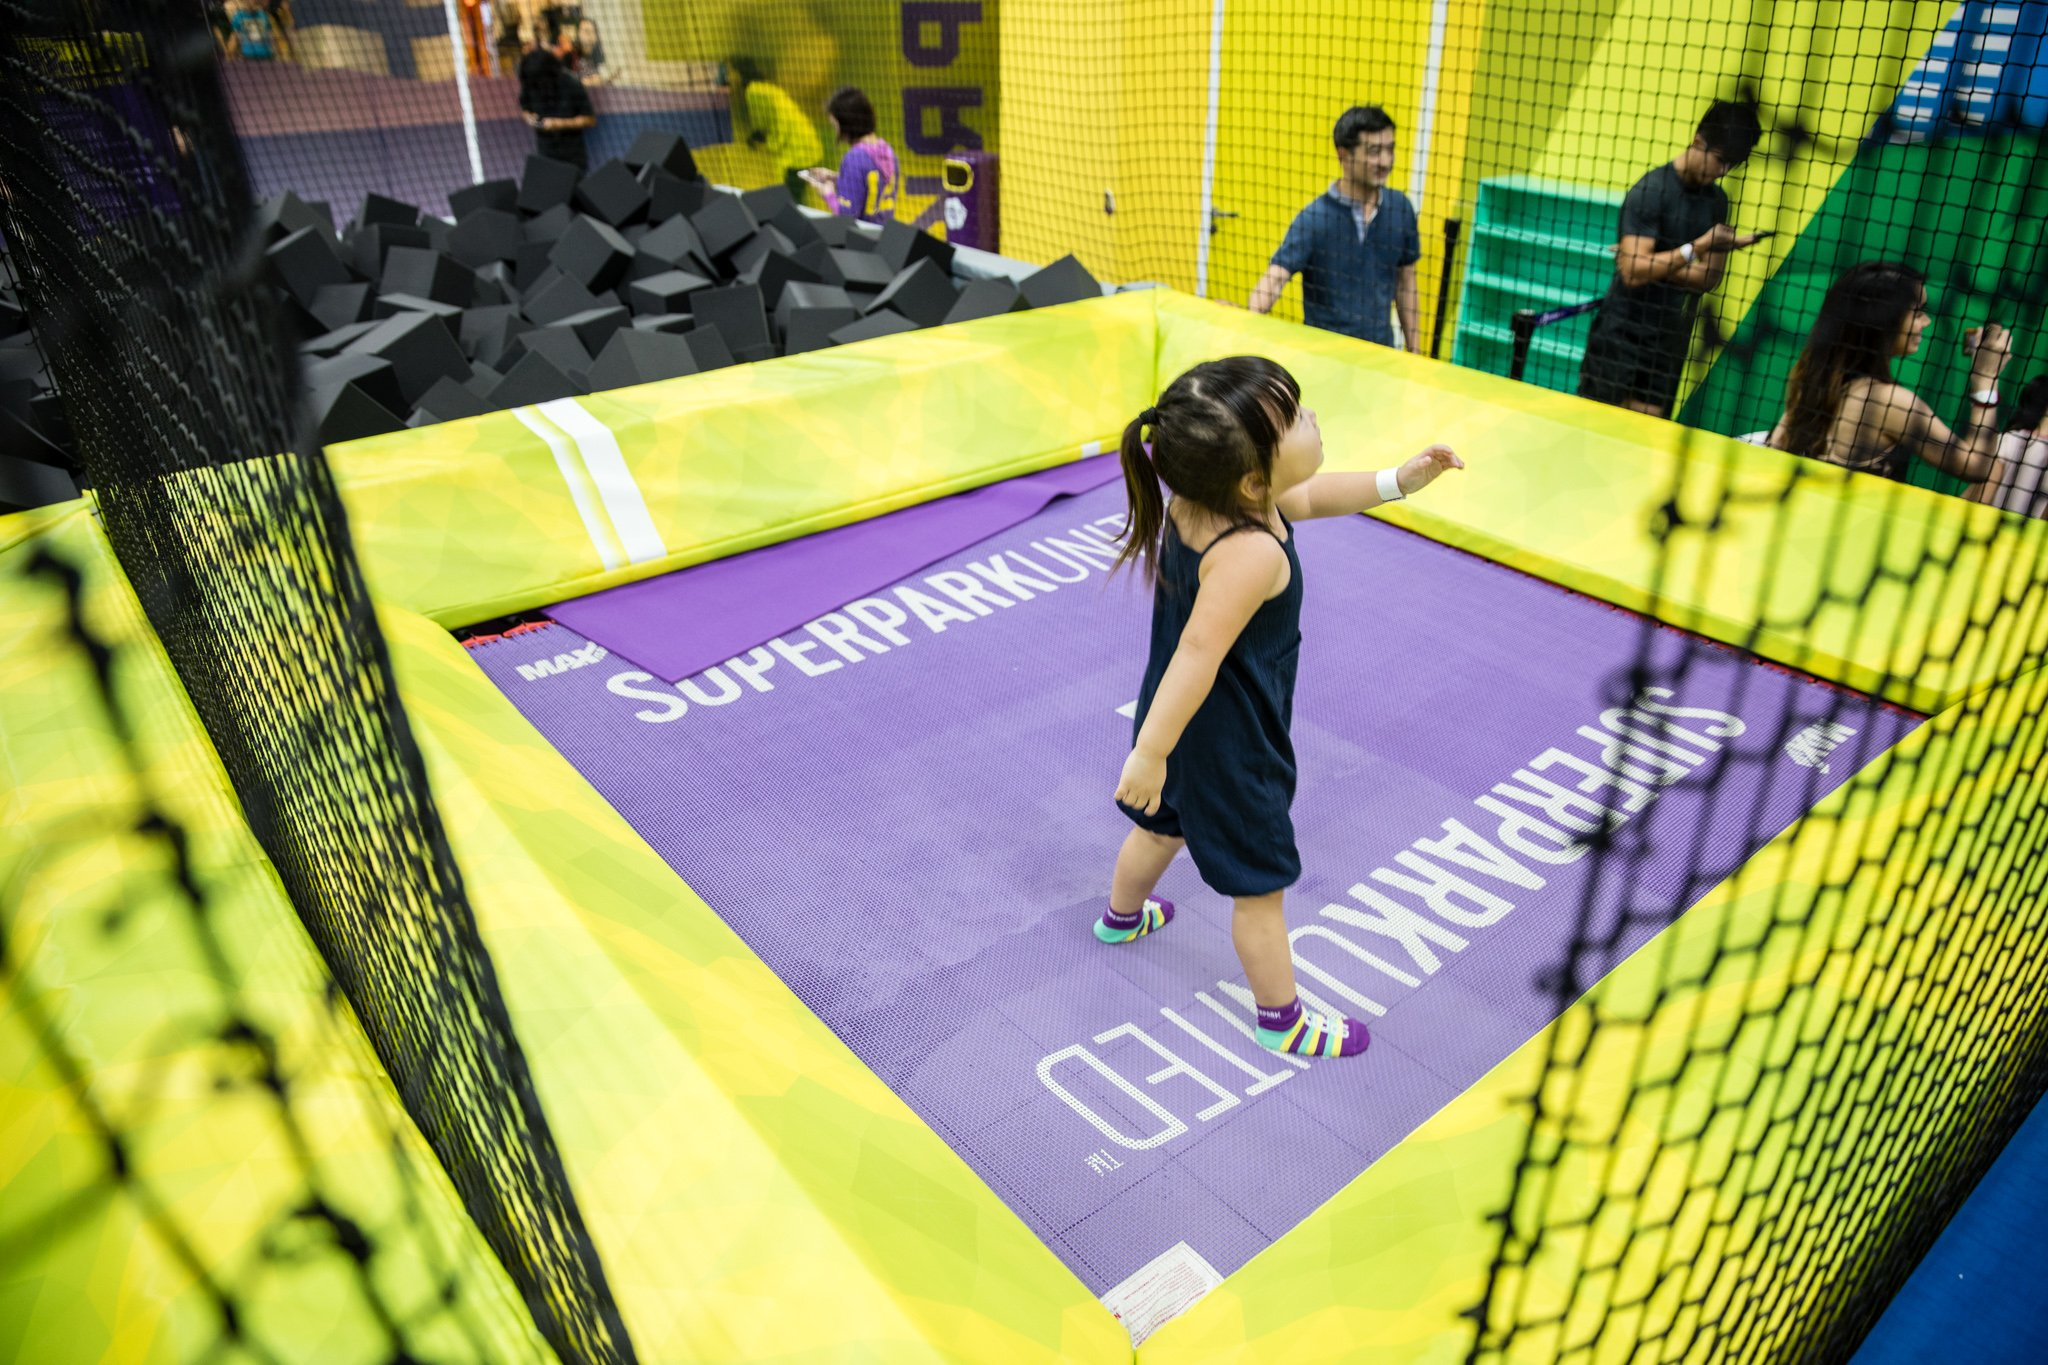 Having some freestyle fun in the adrenaline-pumped area that is complete with trampolines and climbing walls.